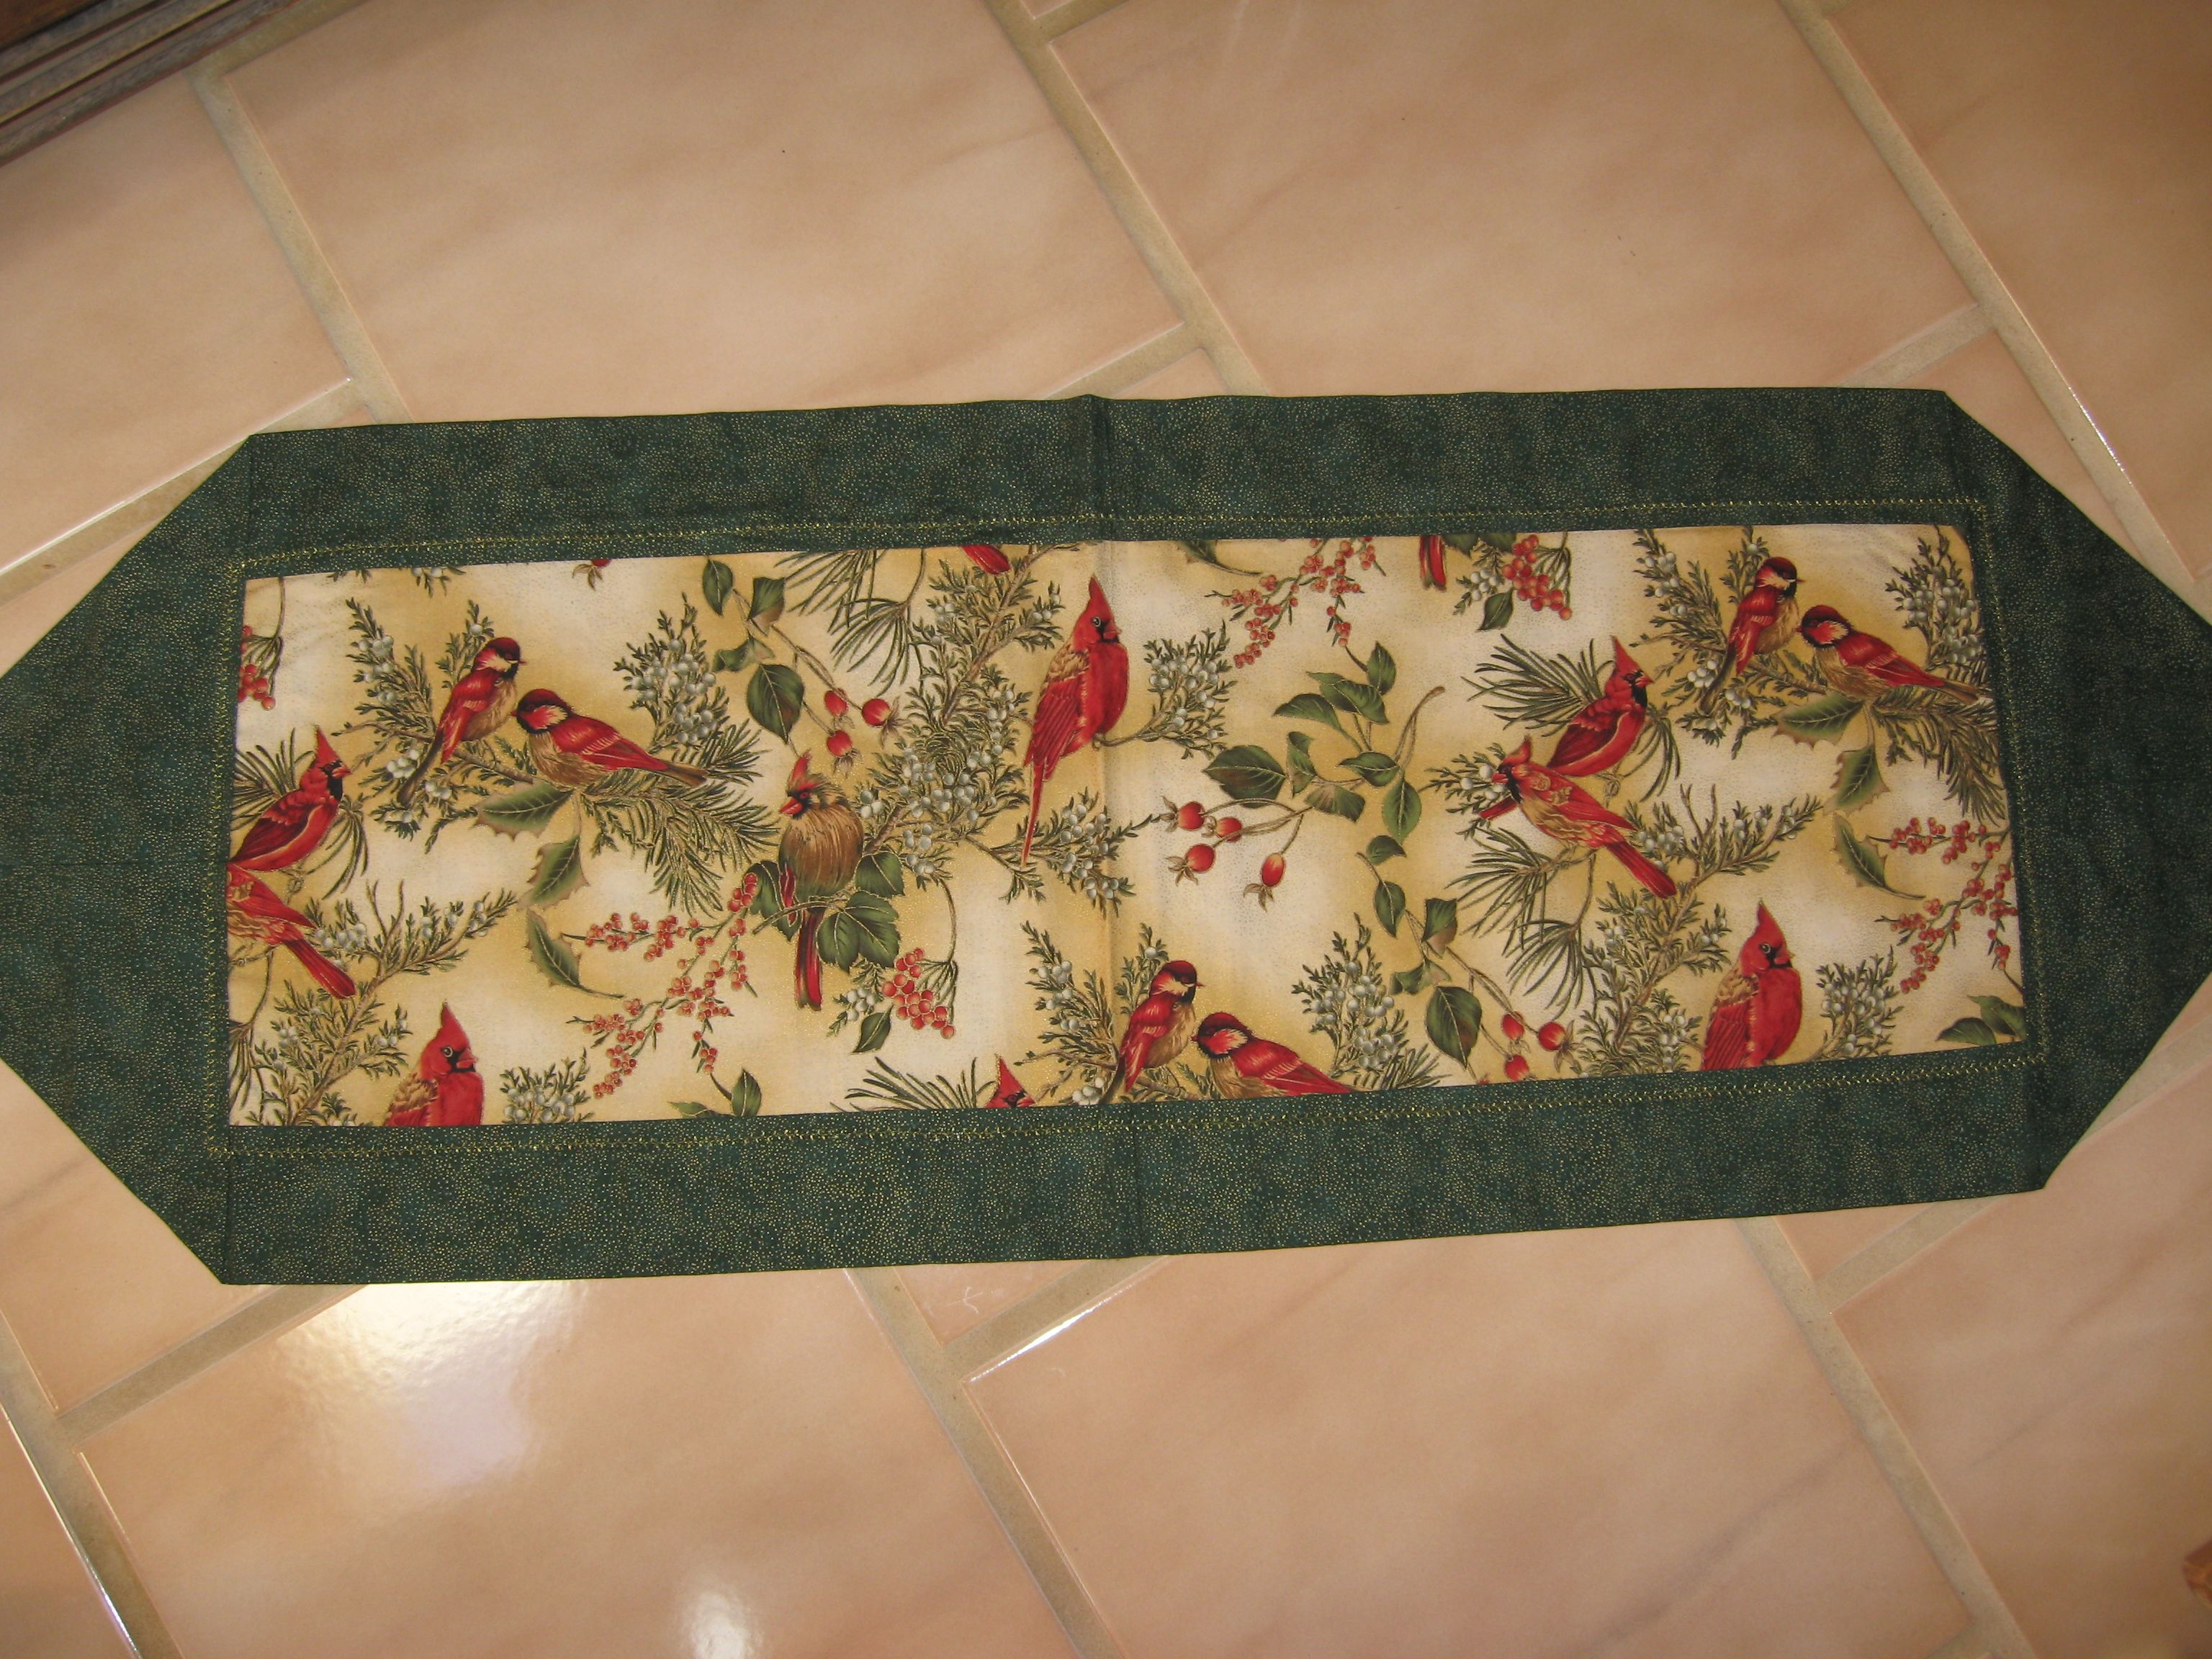 10 Minute Table Runner 10 Minute Table Runner Table Runner Pattern Table Runners